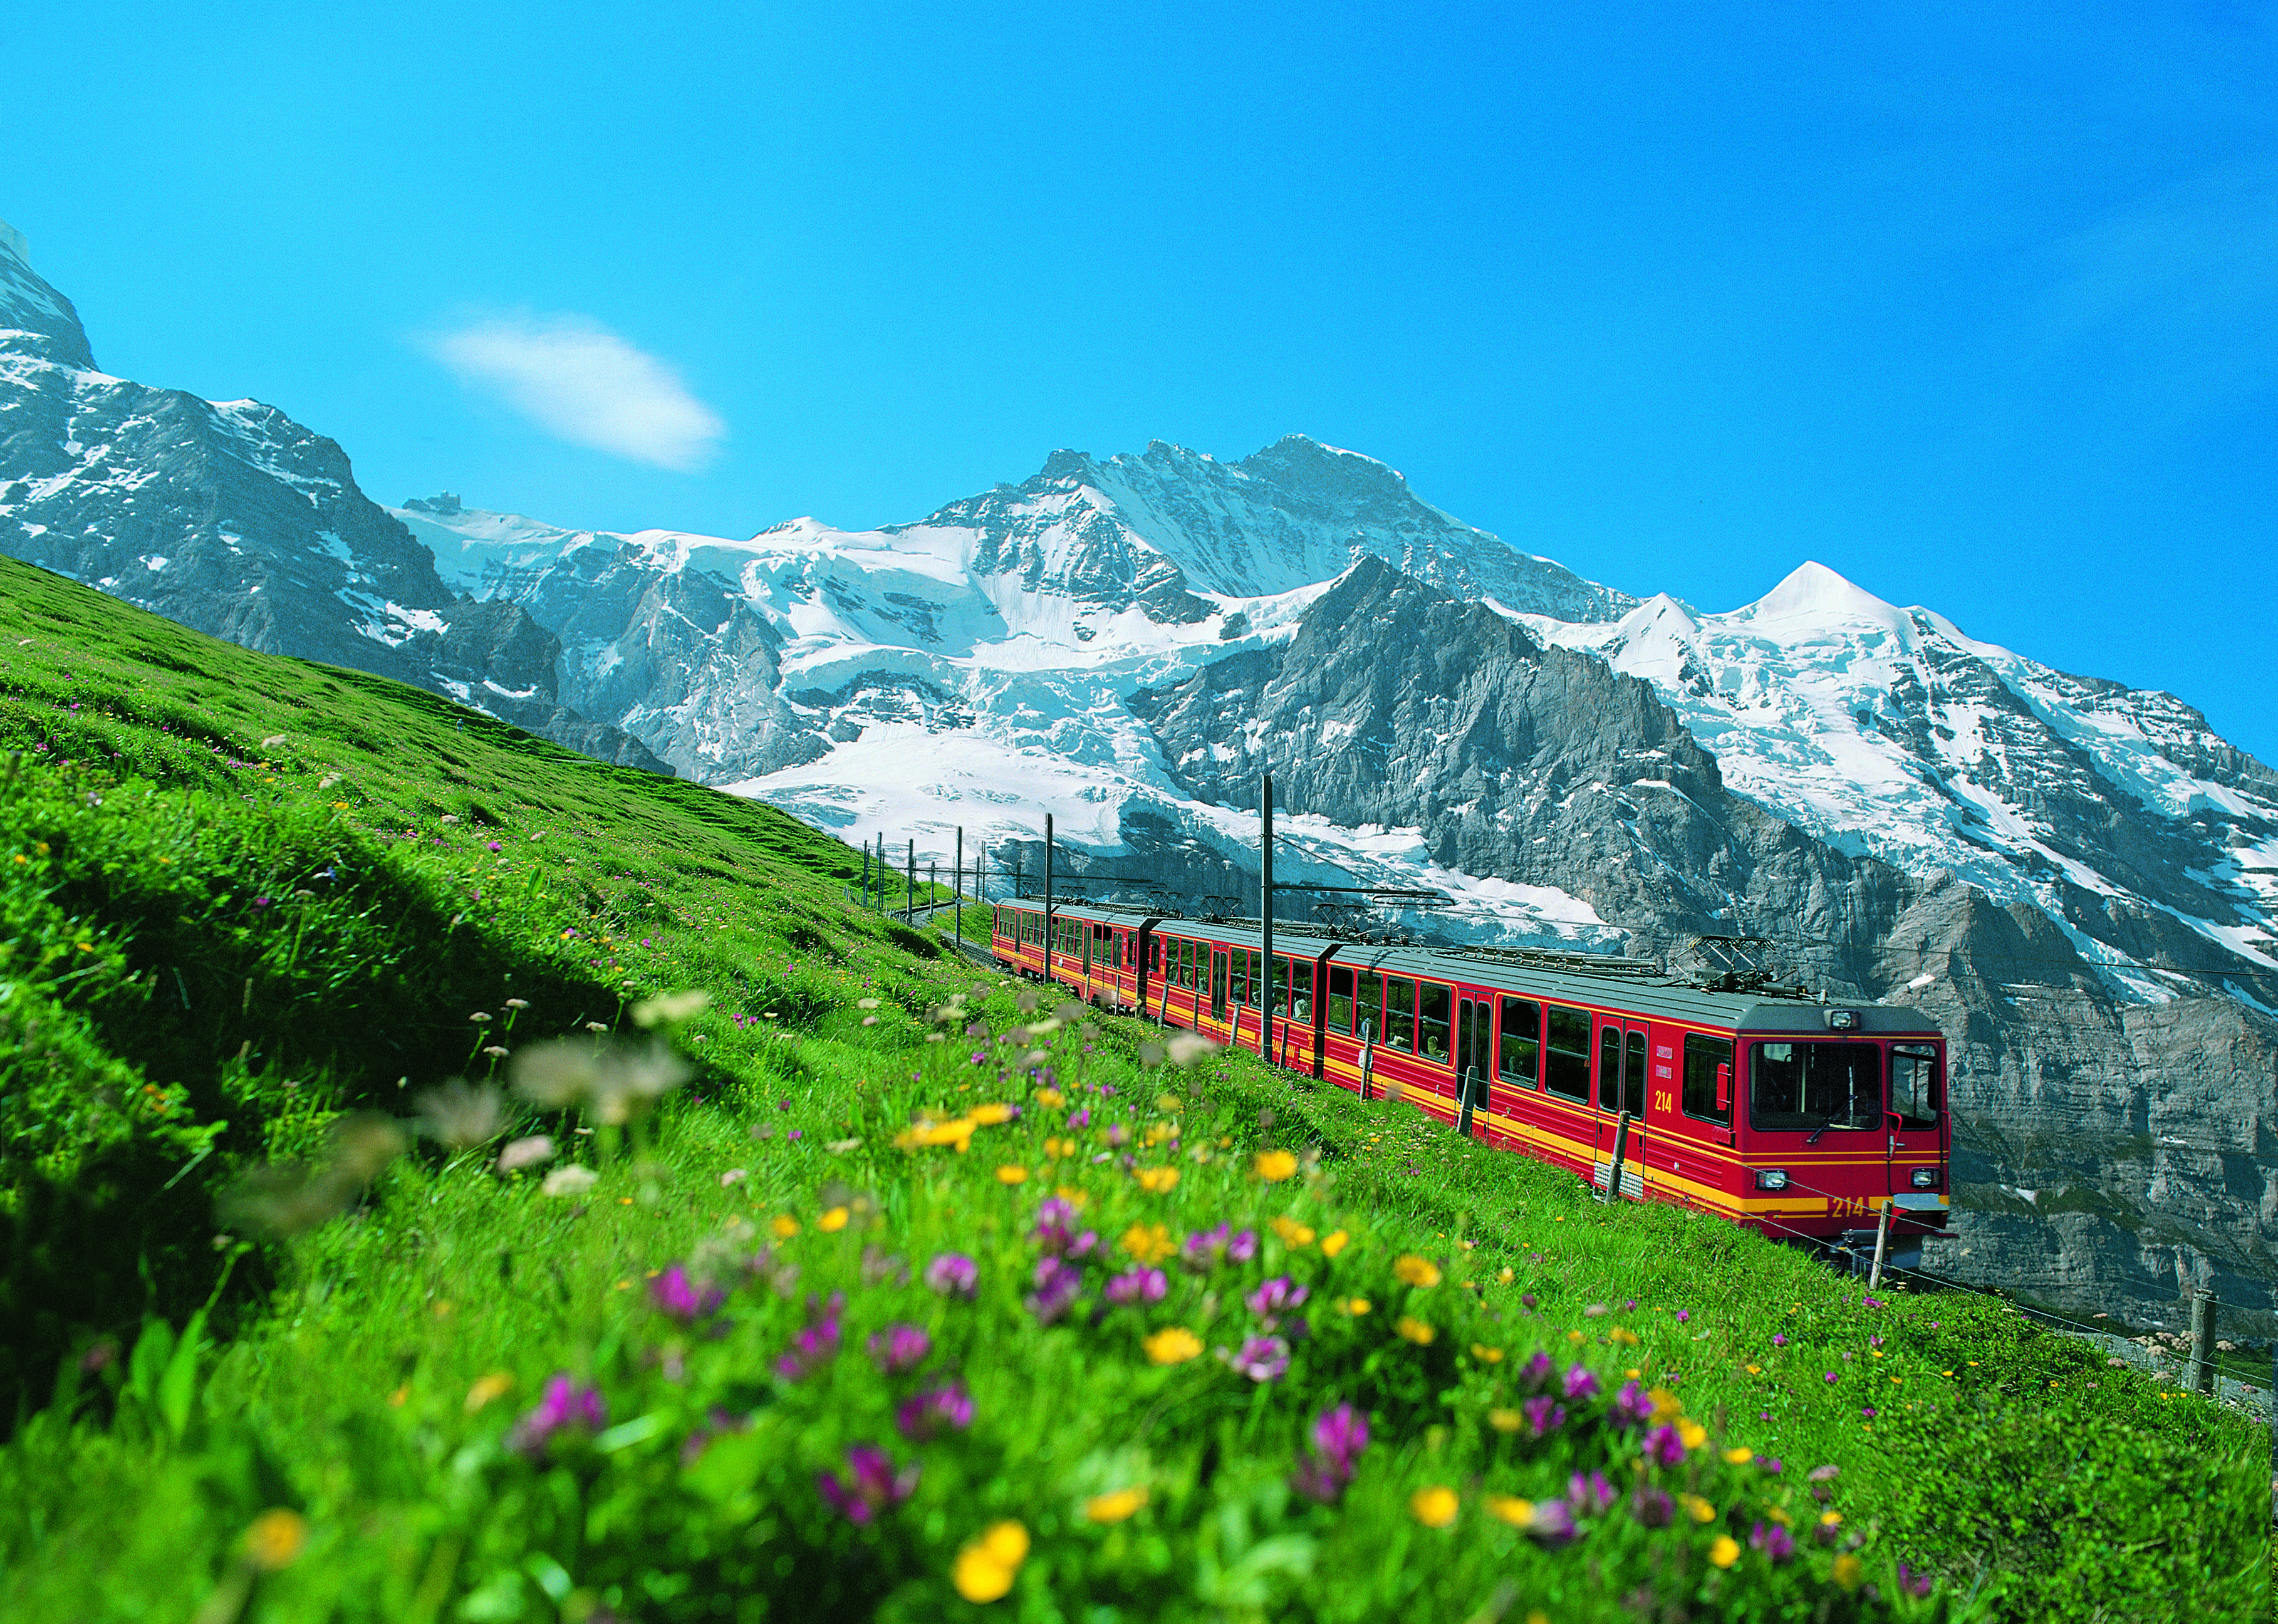 The Jungfraubahn train accompanied by the majestic backdrop of the Jungfrau.